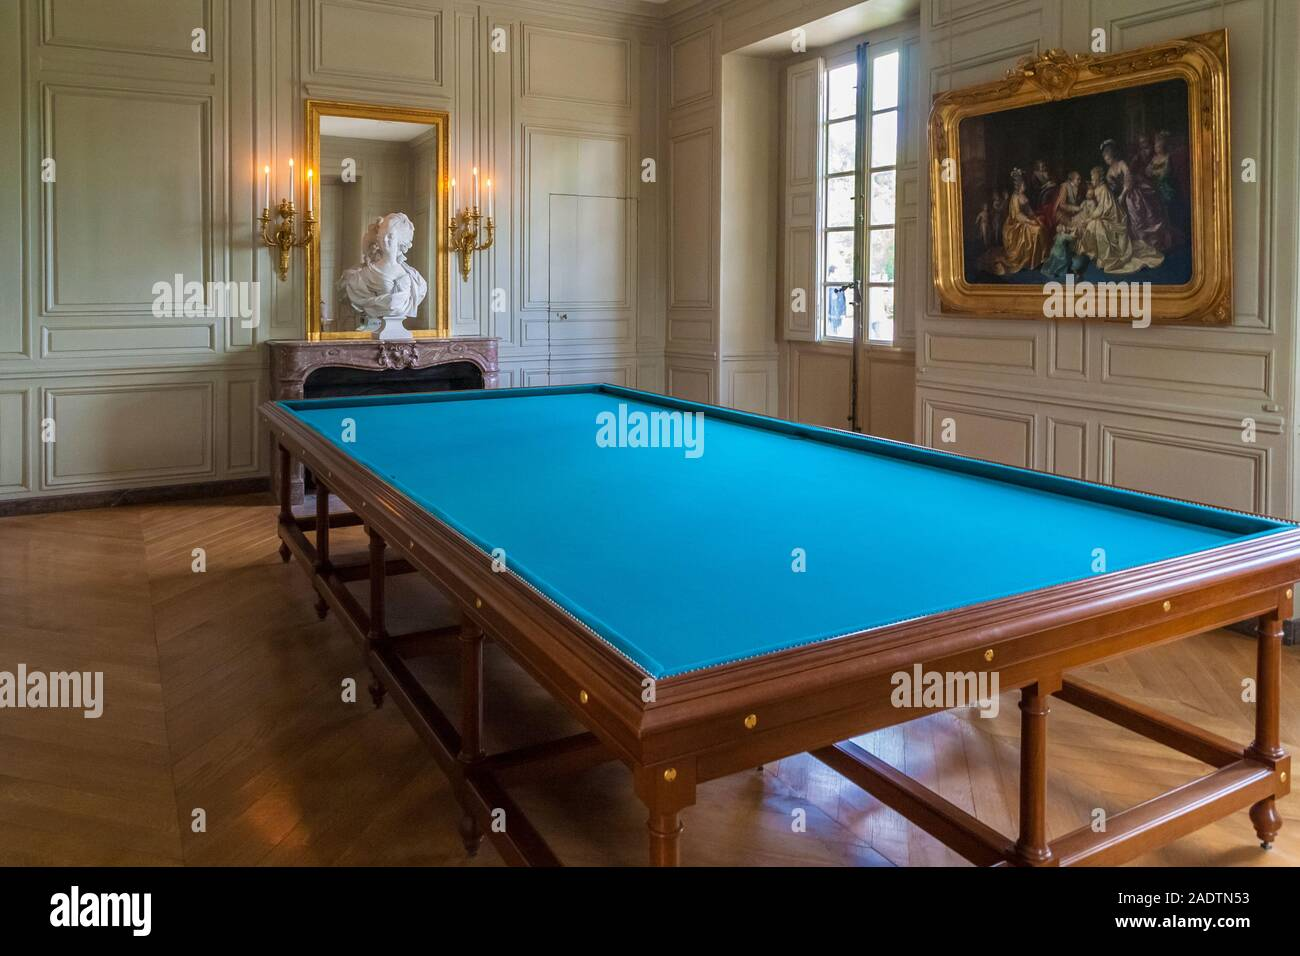 Perfect view of the billiard room on the ground floor in the Petit Trianon Palace in Versailles. Over the fireplace is a bust of Marie-Antoinette by... Stock Photo